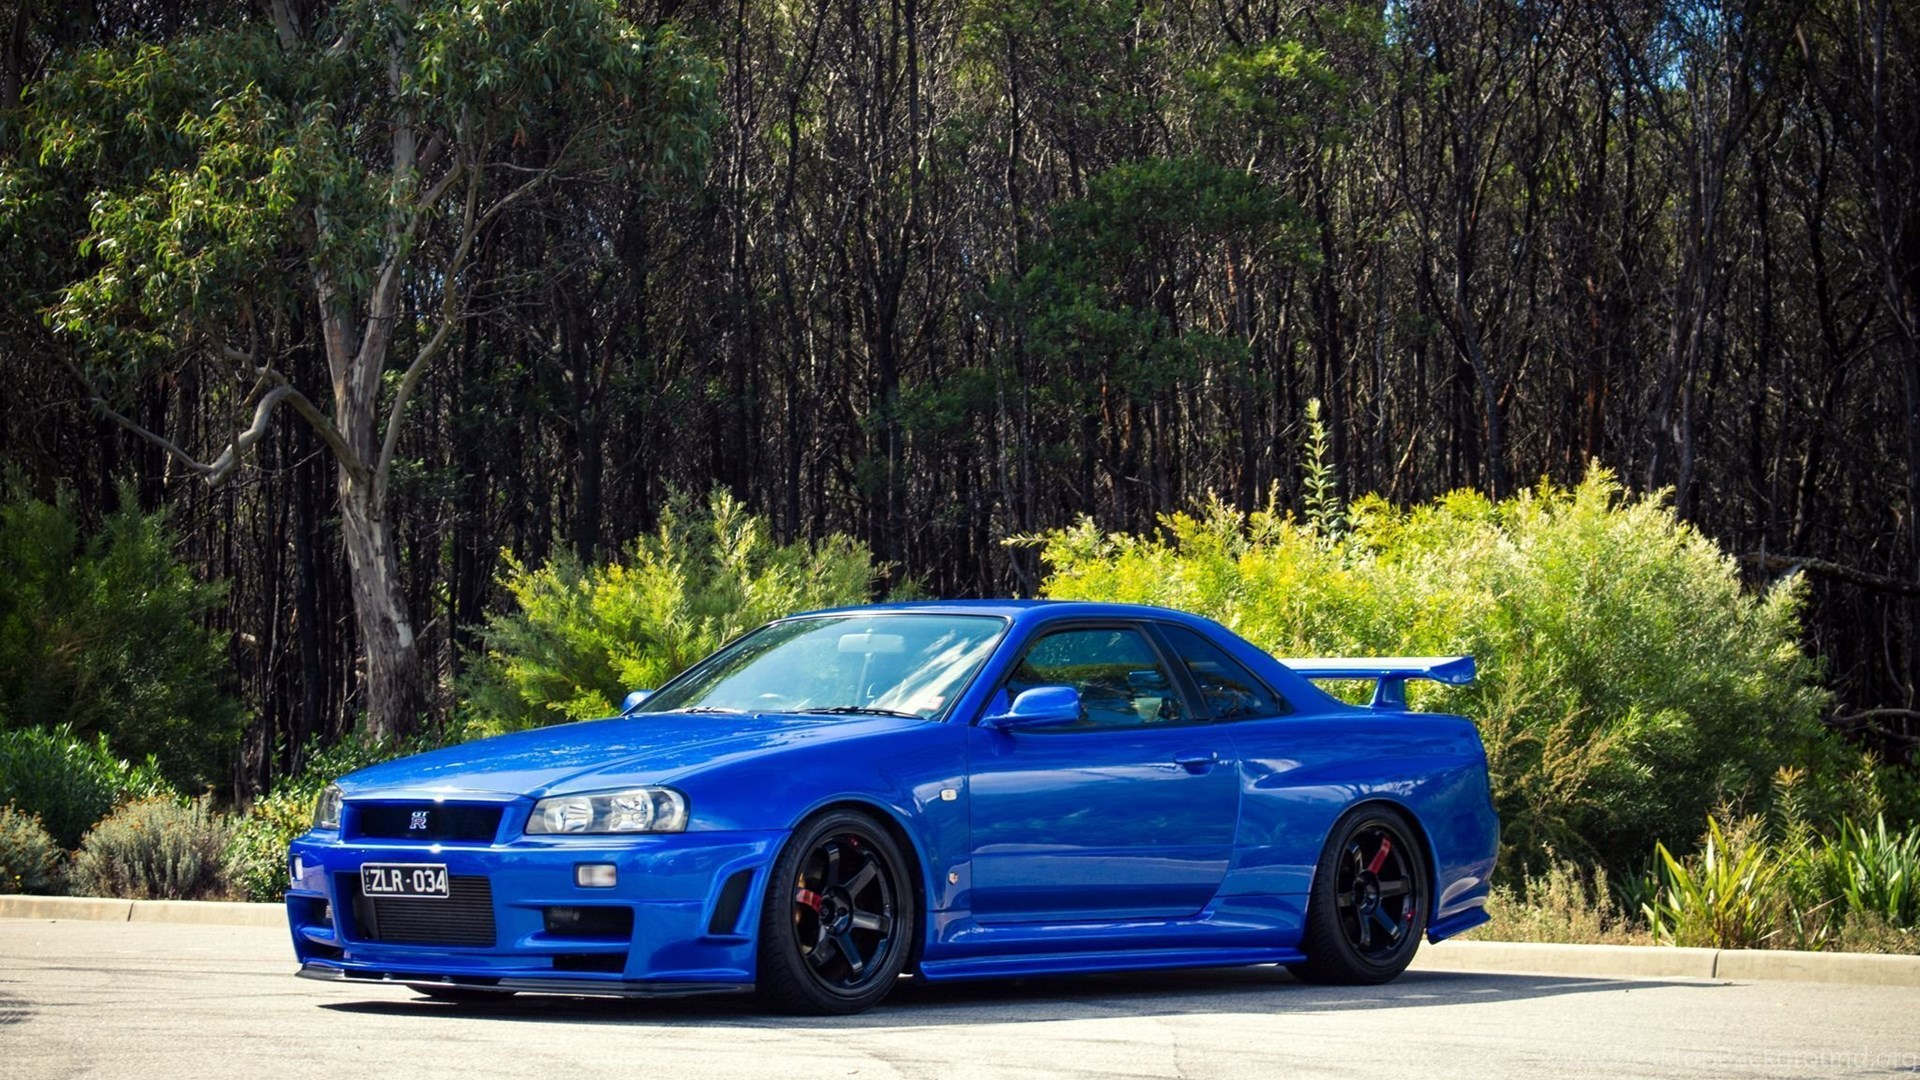 Download Wallpapers Nissan Skyline Gt R R34 Nissan